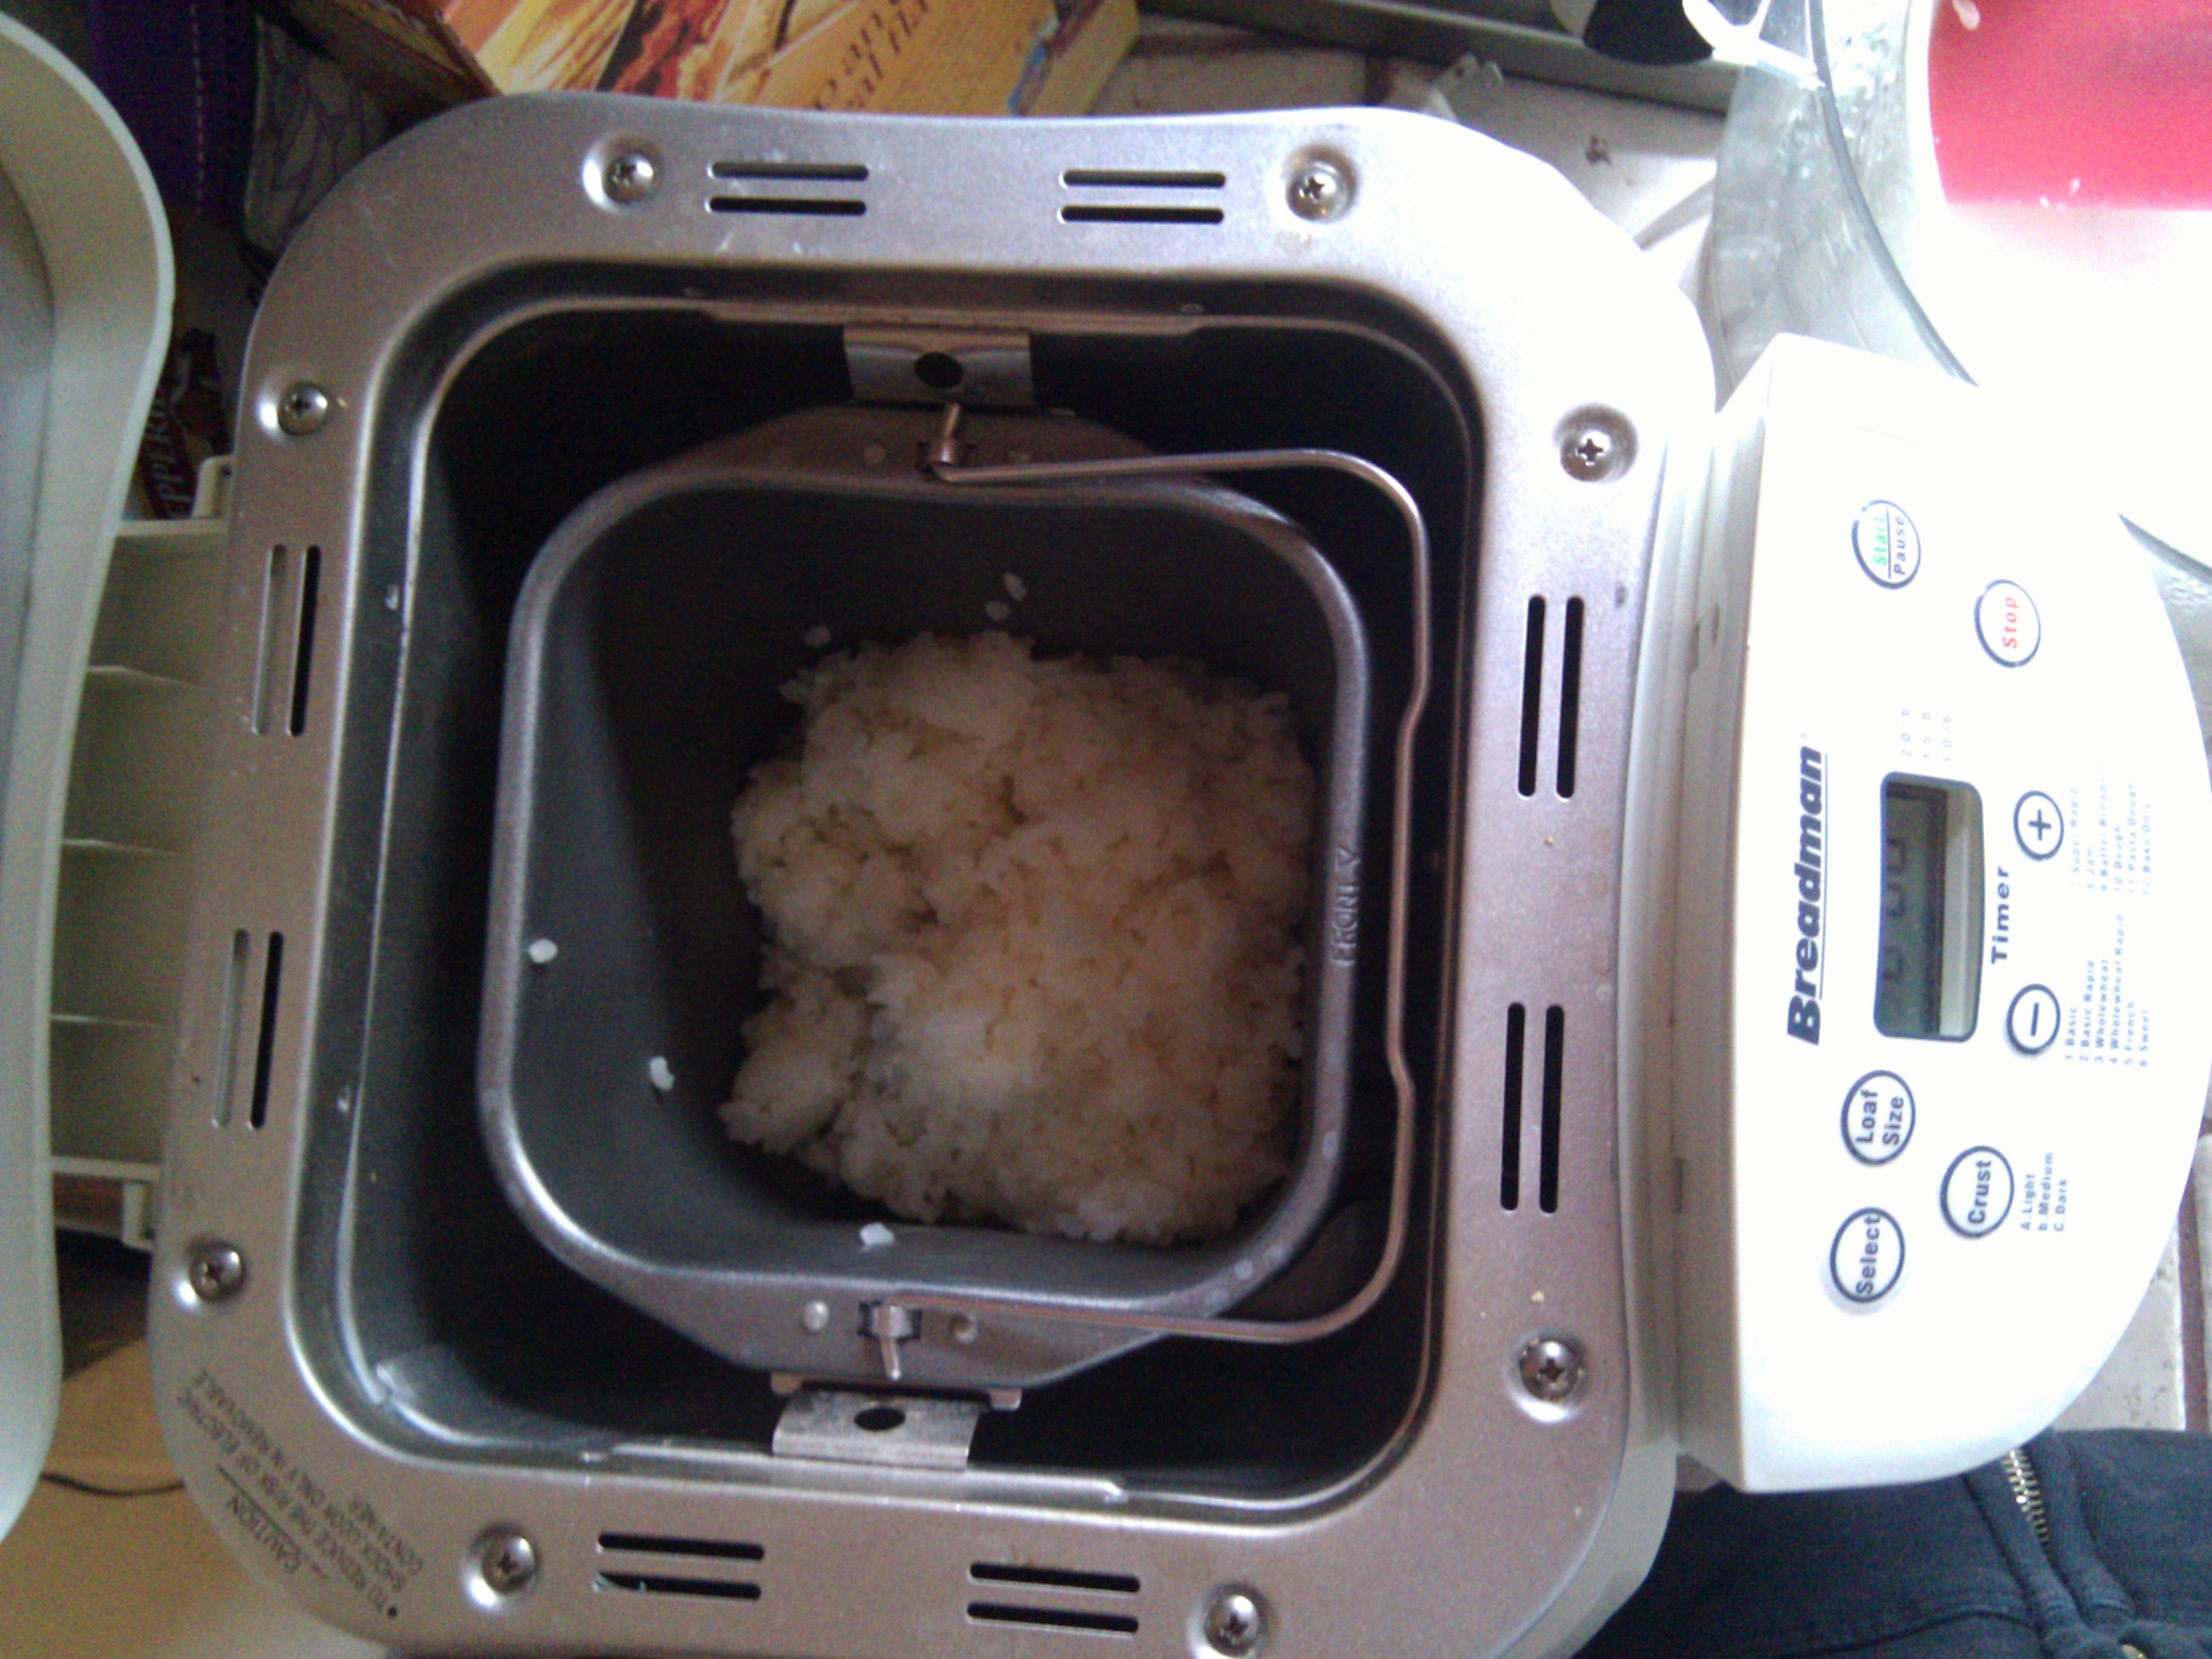 Picture of Cook and Knead the Mochi Rice